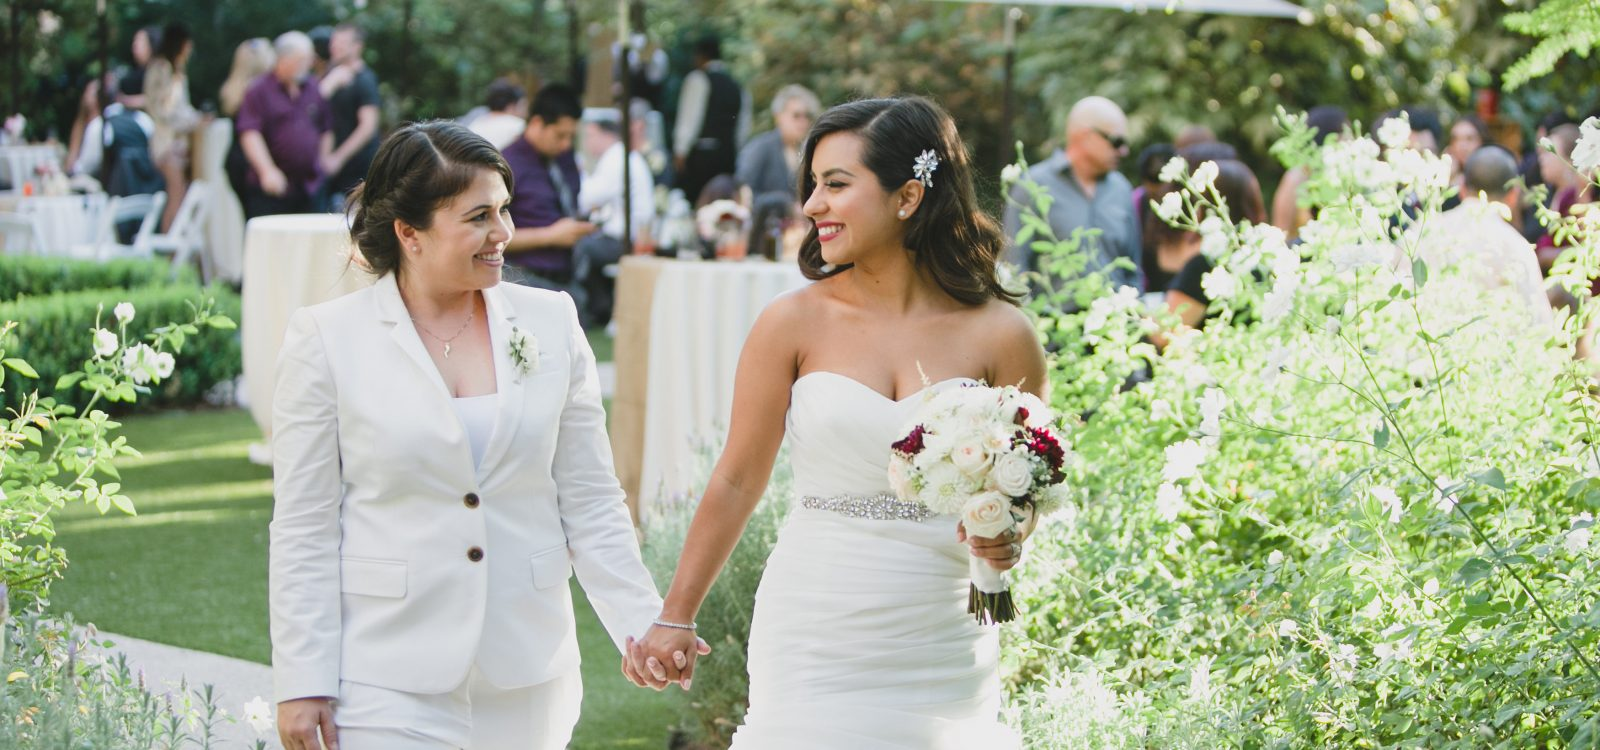 A bride and her mother holding hands